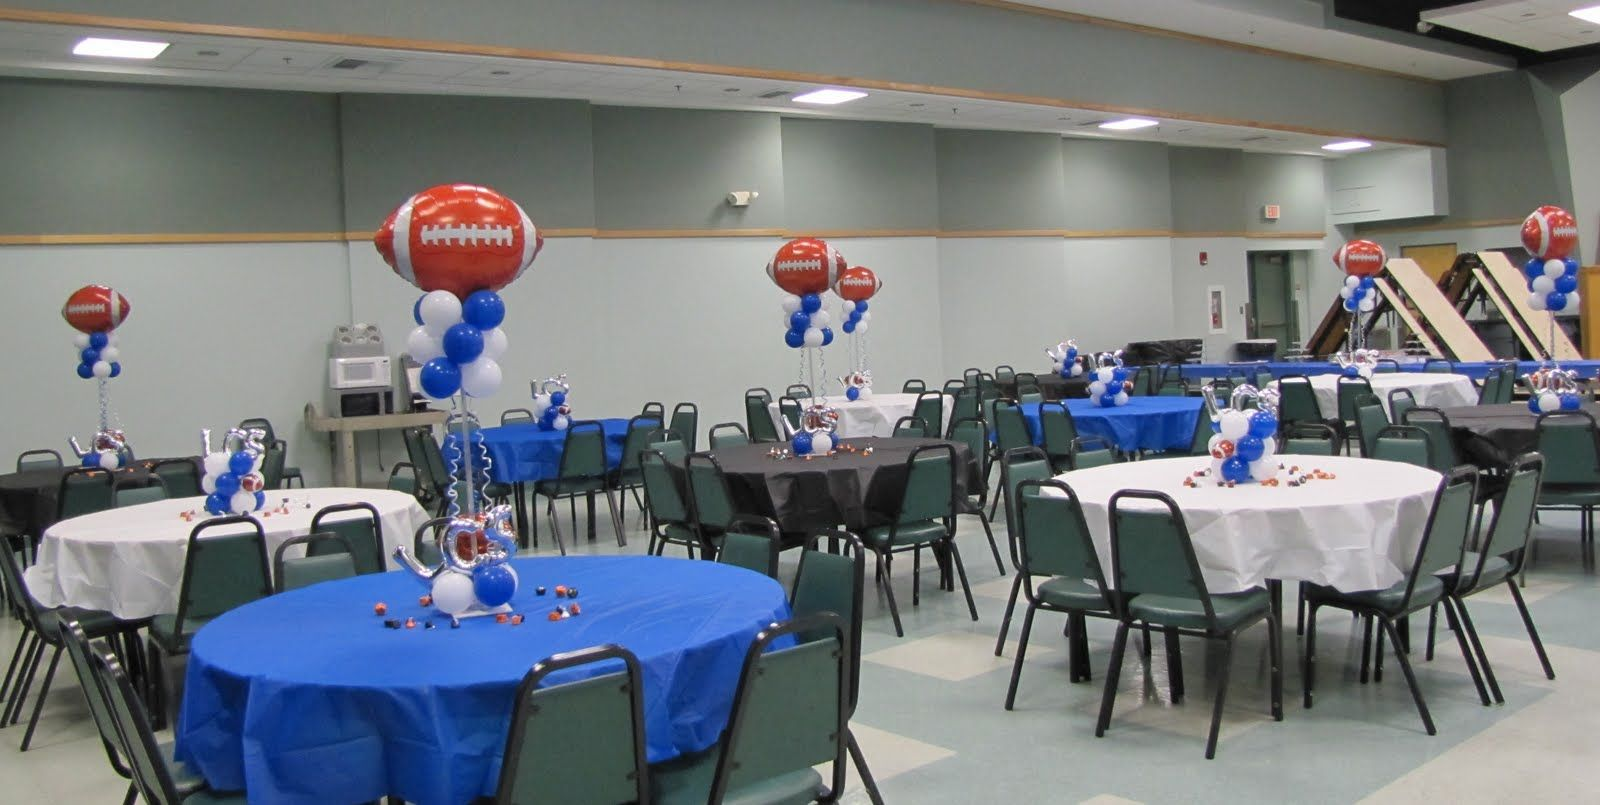 Basketball banquet centerpieces party people celebration